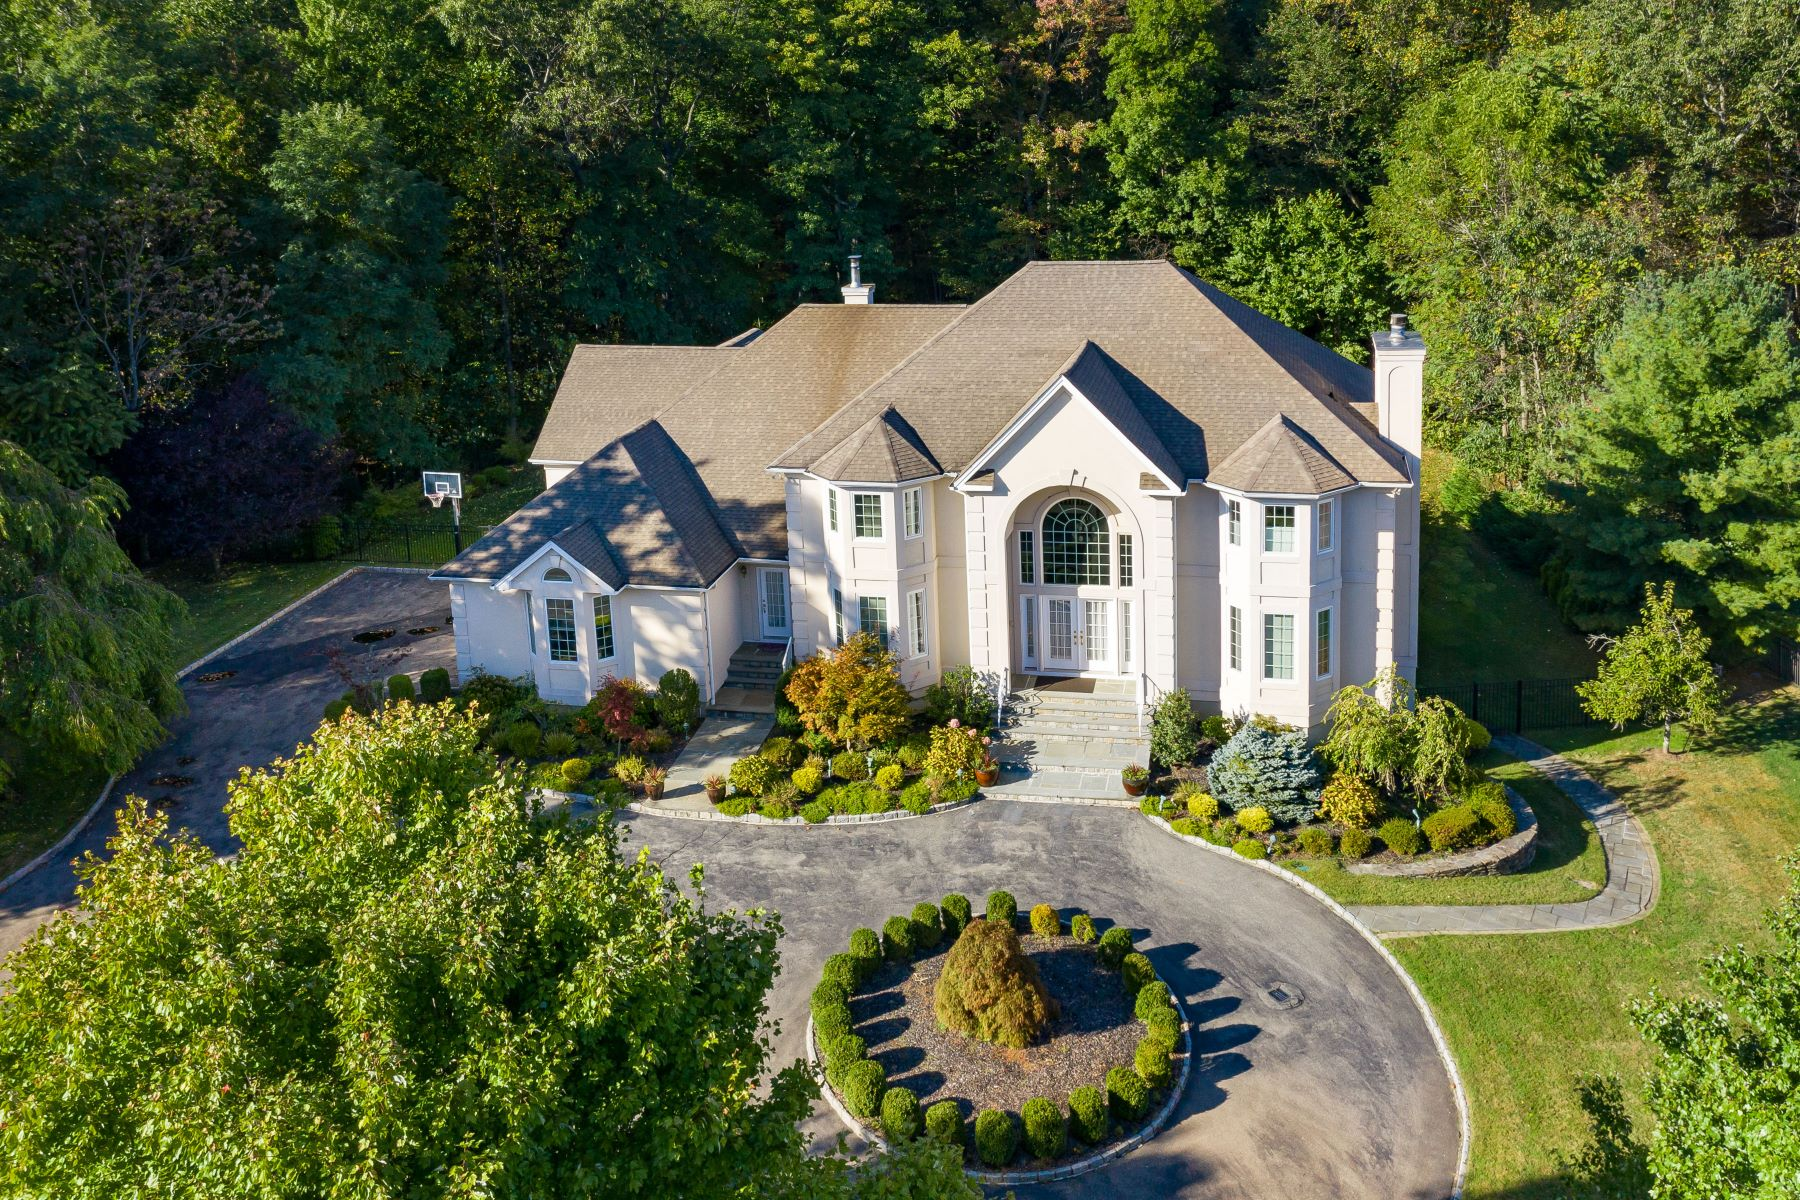 Single Family Homes for Active at 95 Stonewall Circle 95 Stonewall Cir West Harrison, New York 10604 United States